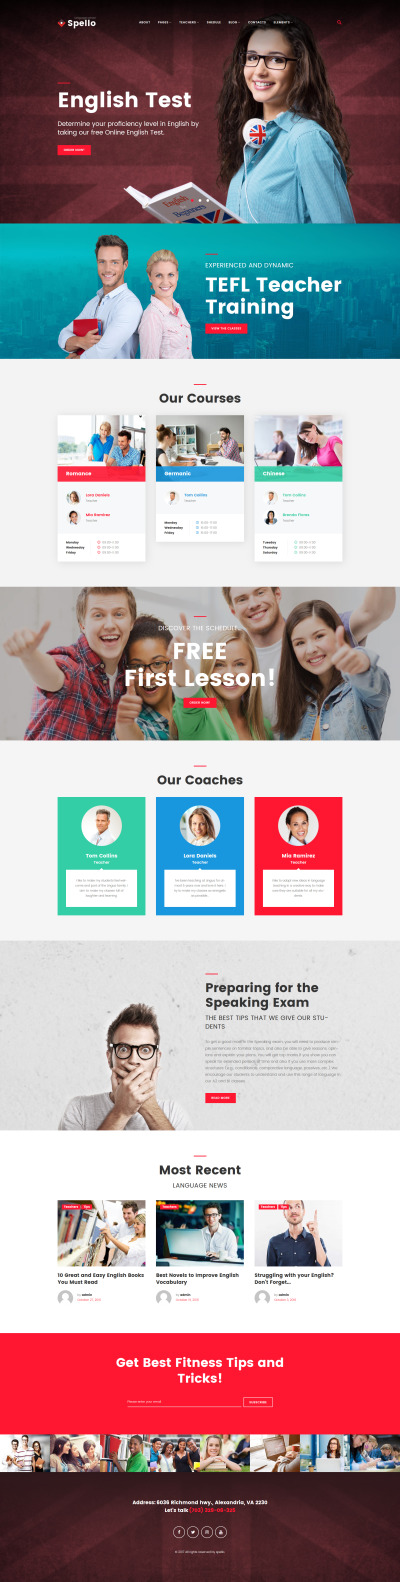 Spello - Language School WordPress Theme #62354